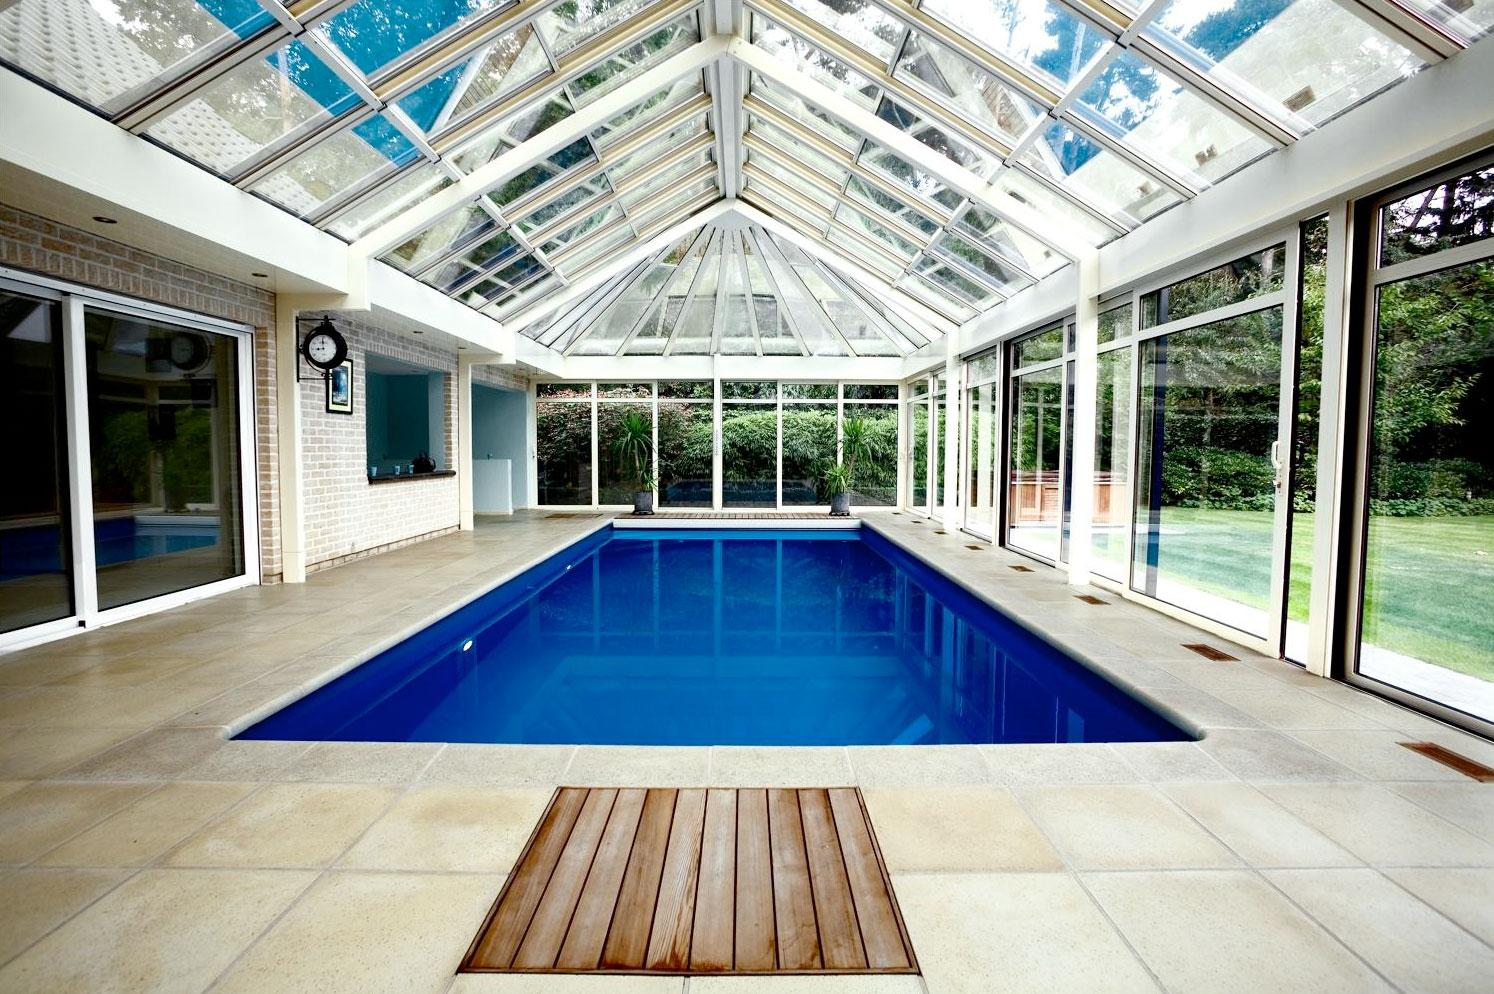 Zenyd en sliding roof applications swimming pool for Indoor garden pool